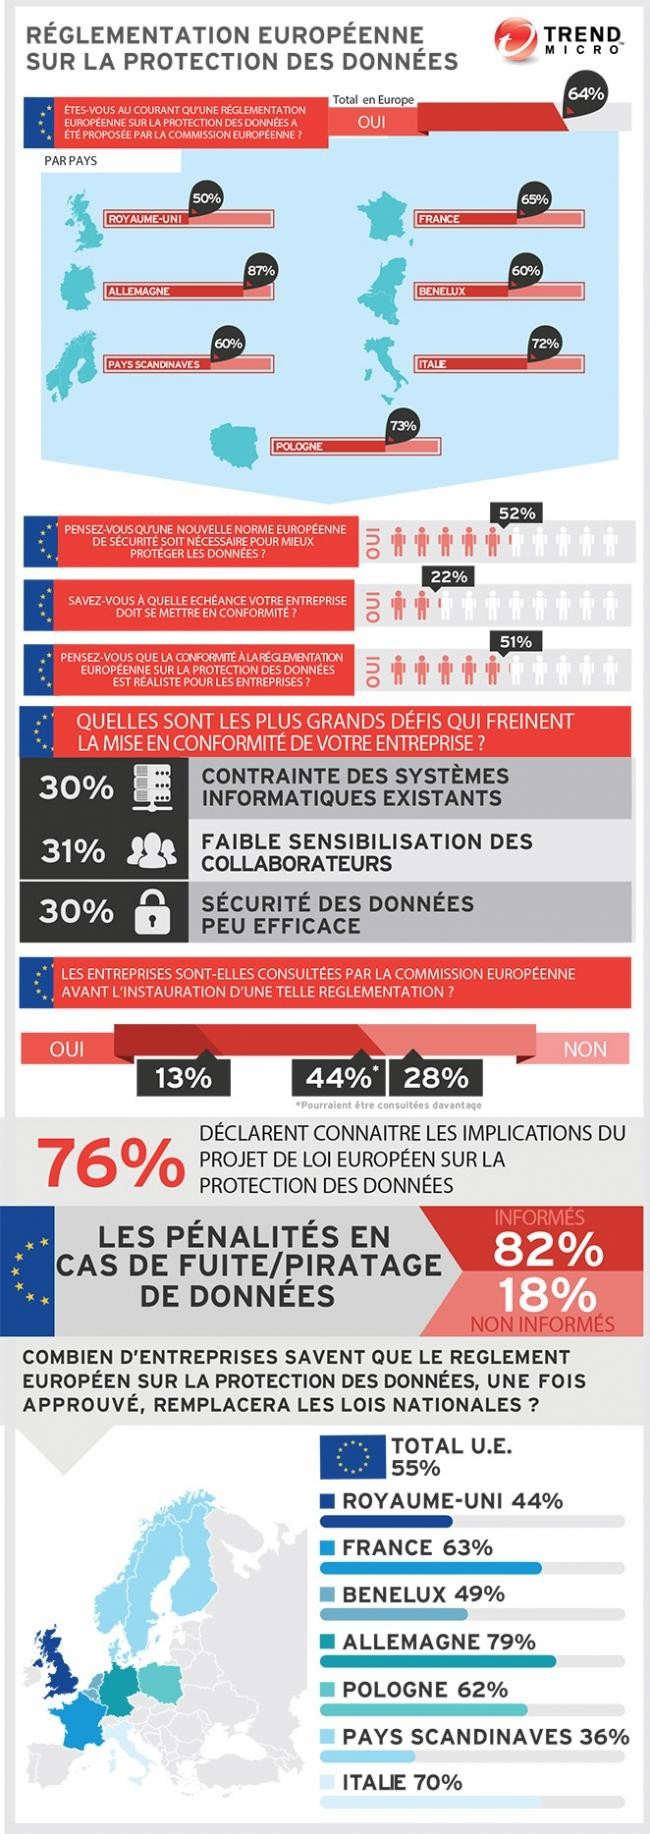 protection-donnees-reglementation-europeenne